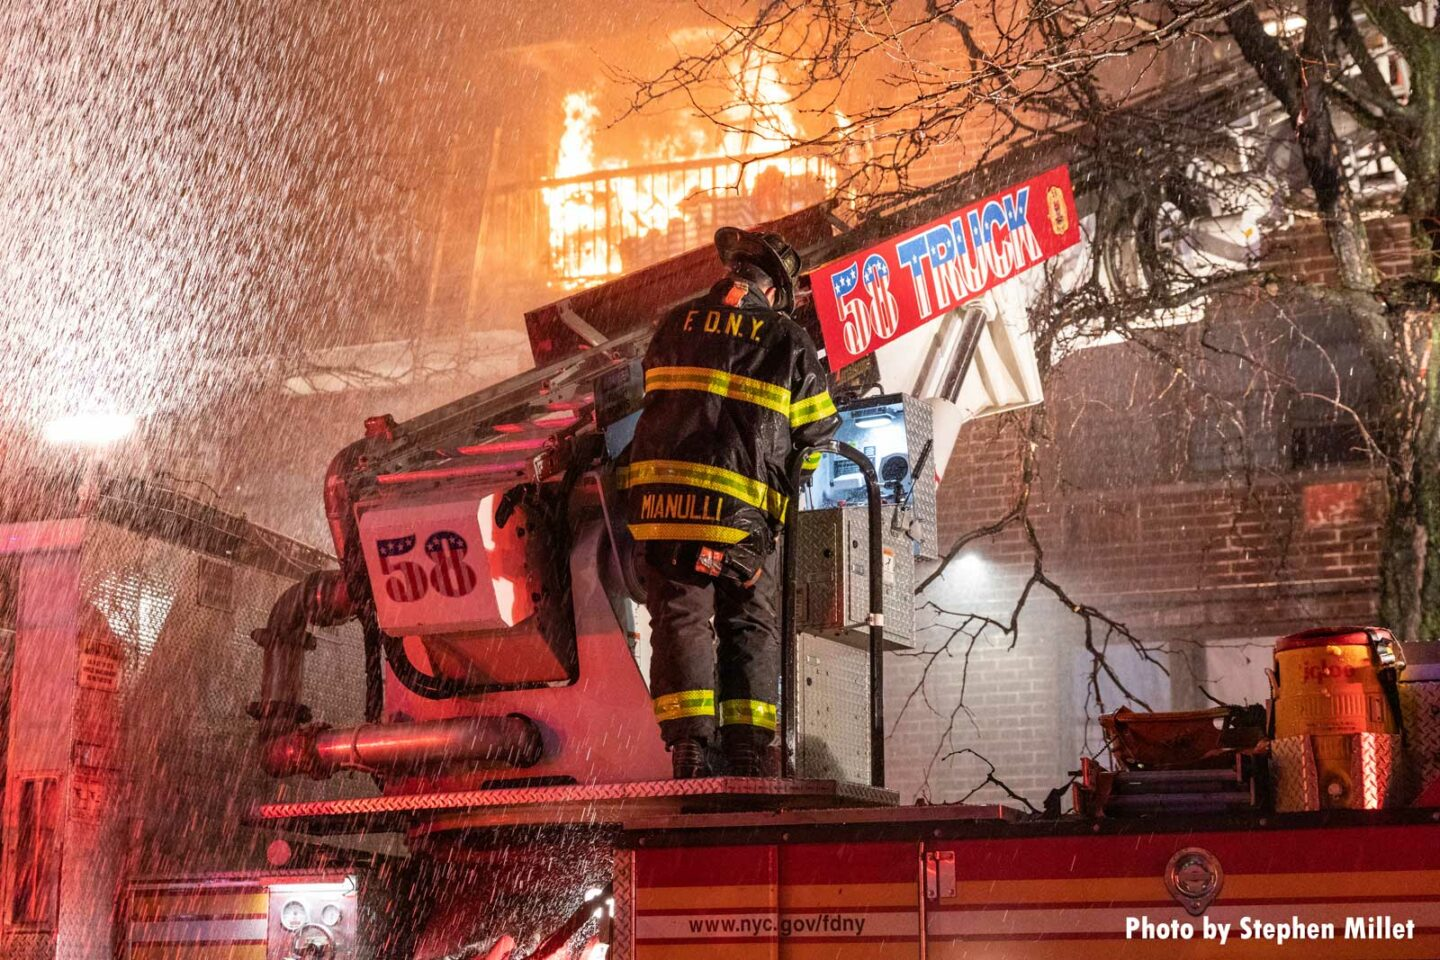 Flames rage in a building as a firefighter on 58 Truck works. This Bronx fire was the first multiple-alarm of 2021 for the FDNY